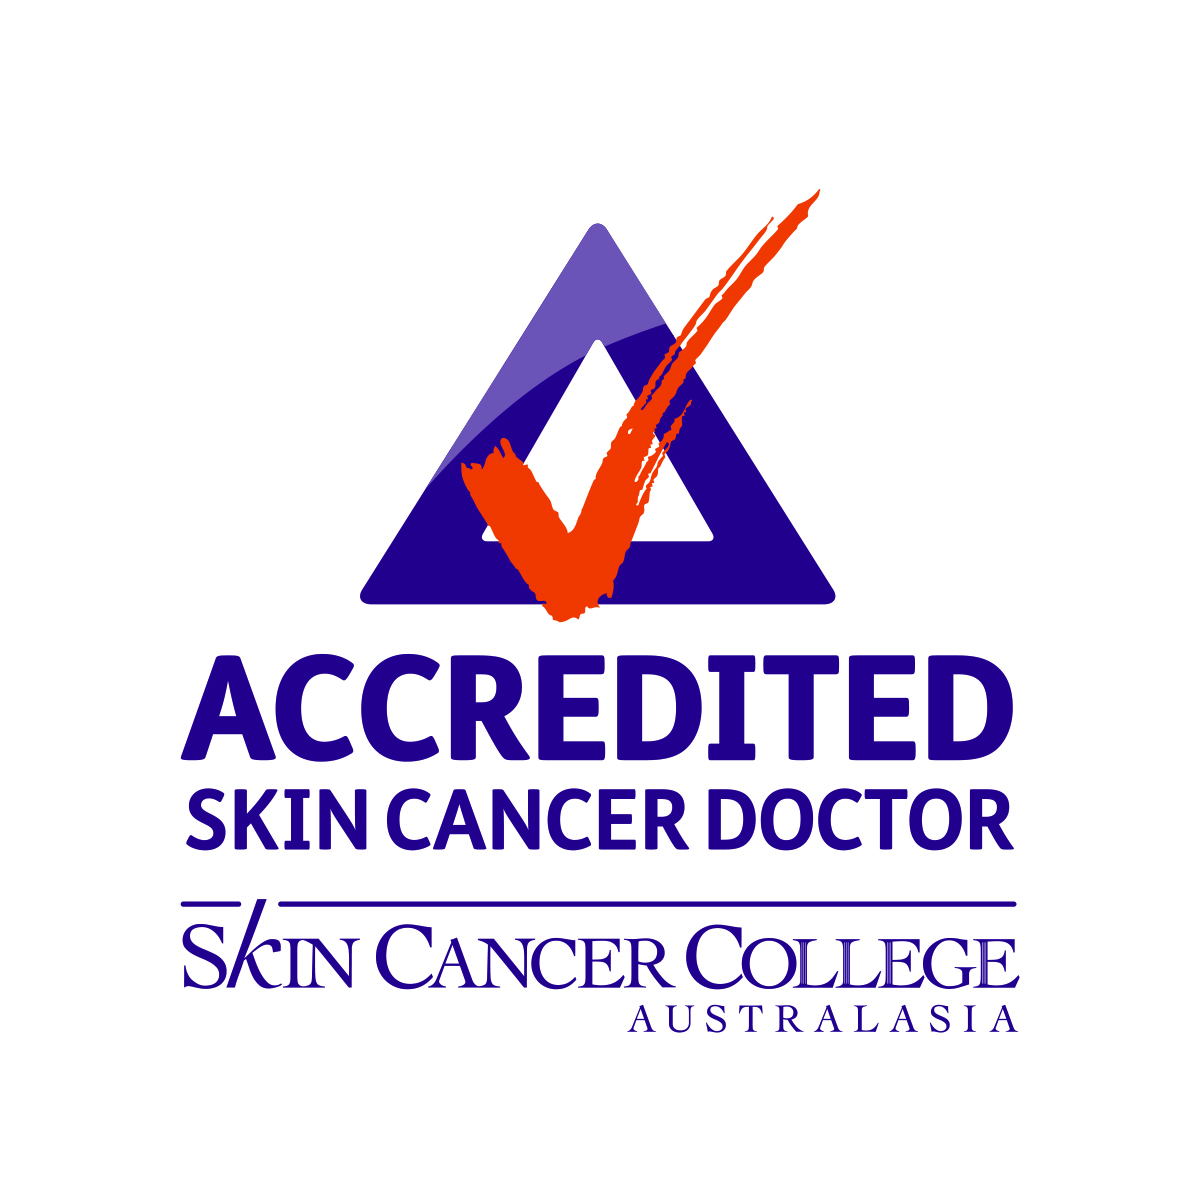 skin cancer logo